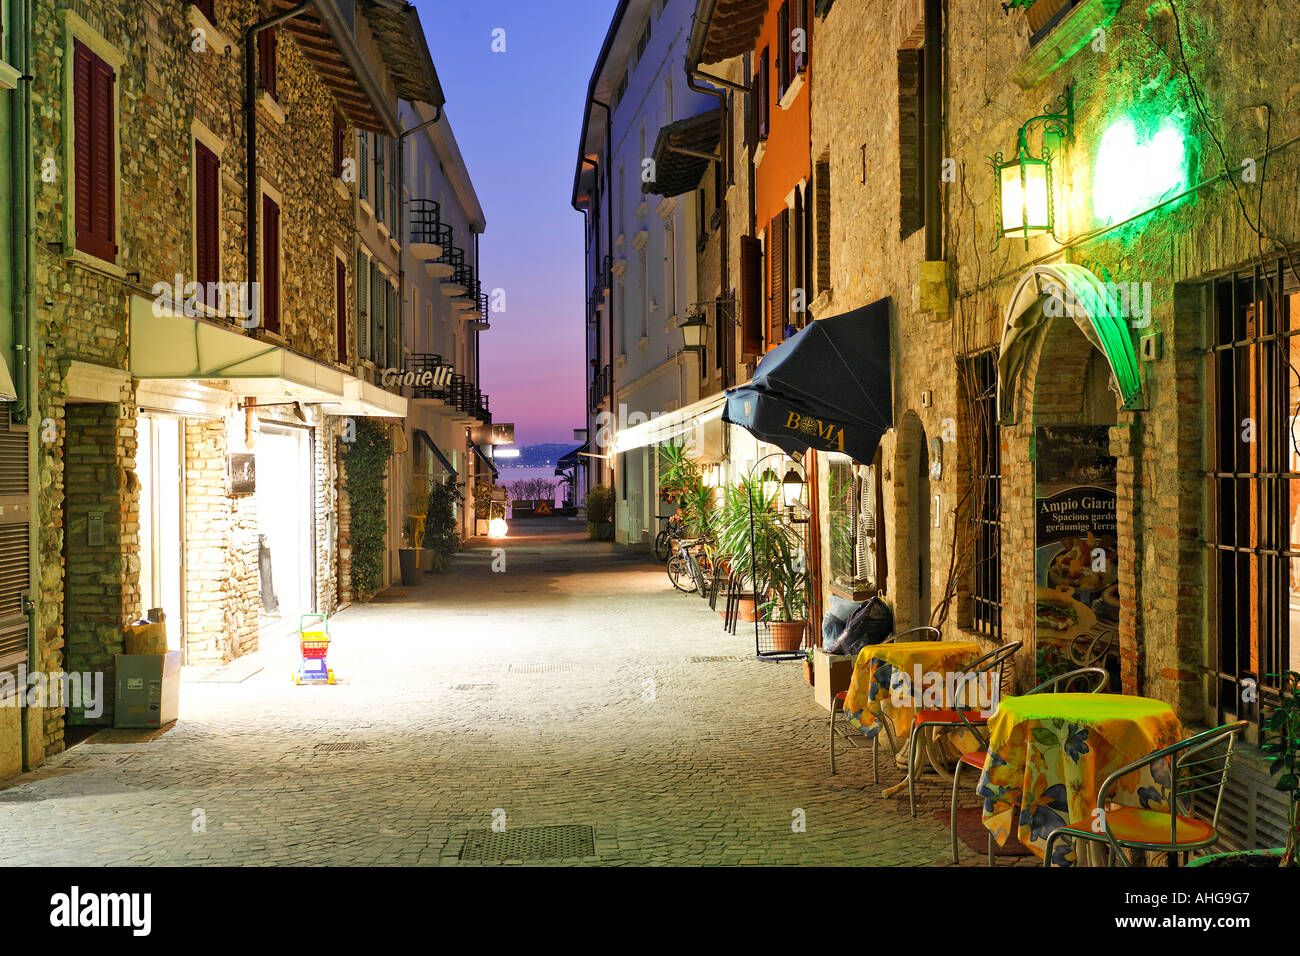 In springtime the restaurants are seldomly visited in the tourist town of Sirmione, Lake Garda, Italy - Stock Image